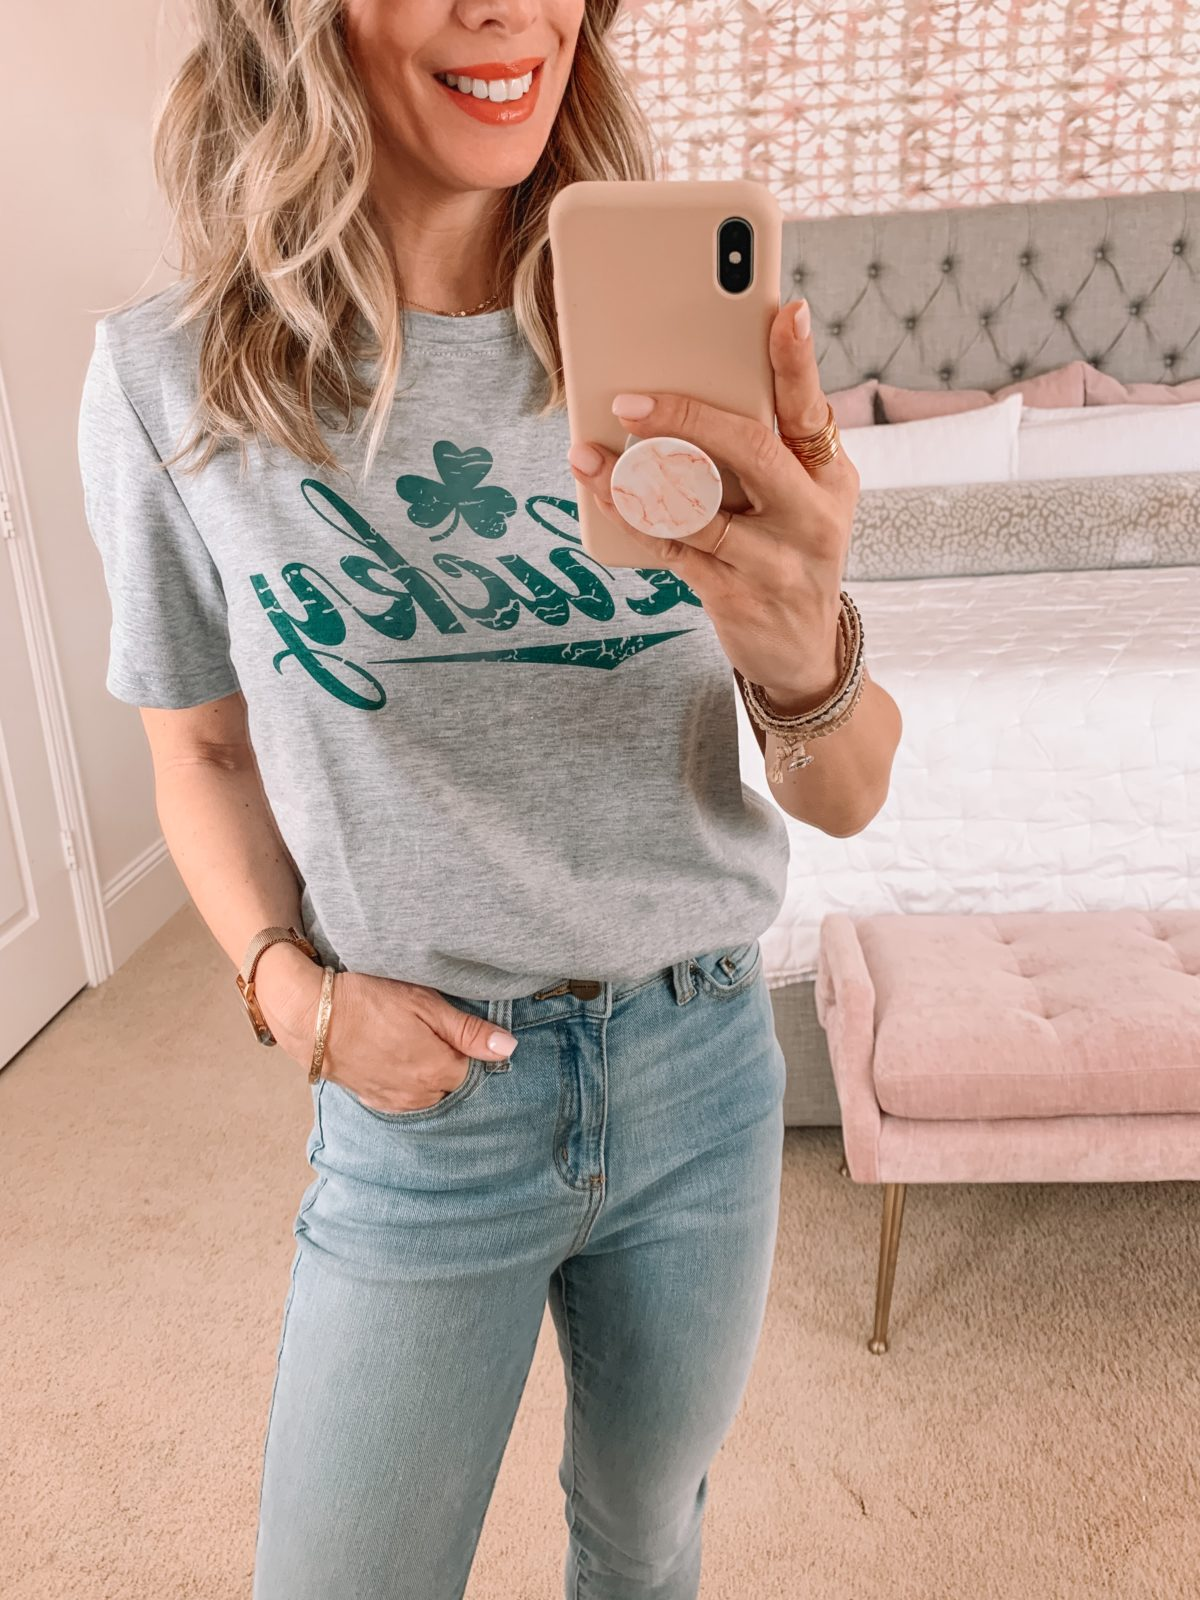 Amazon Fashion Faves, Lucky tee, Jeans, Booties